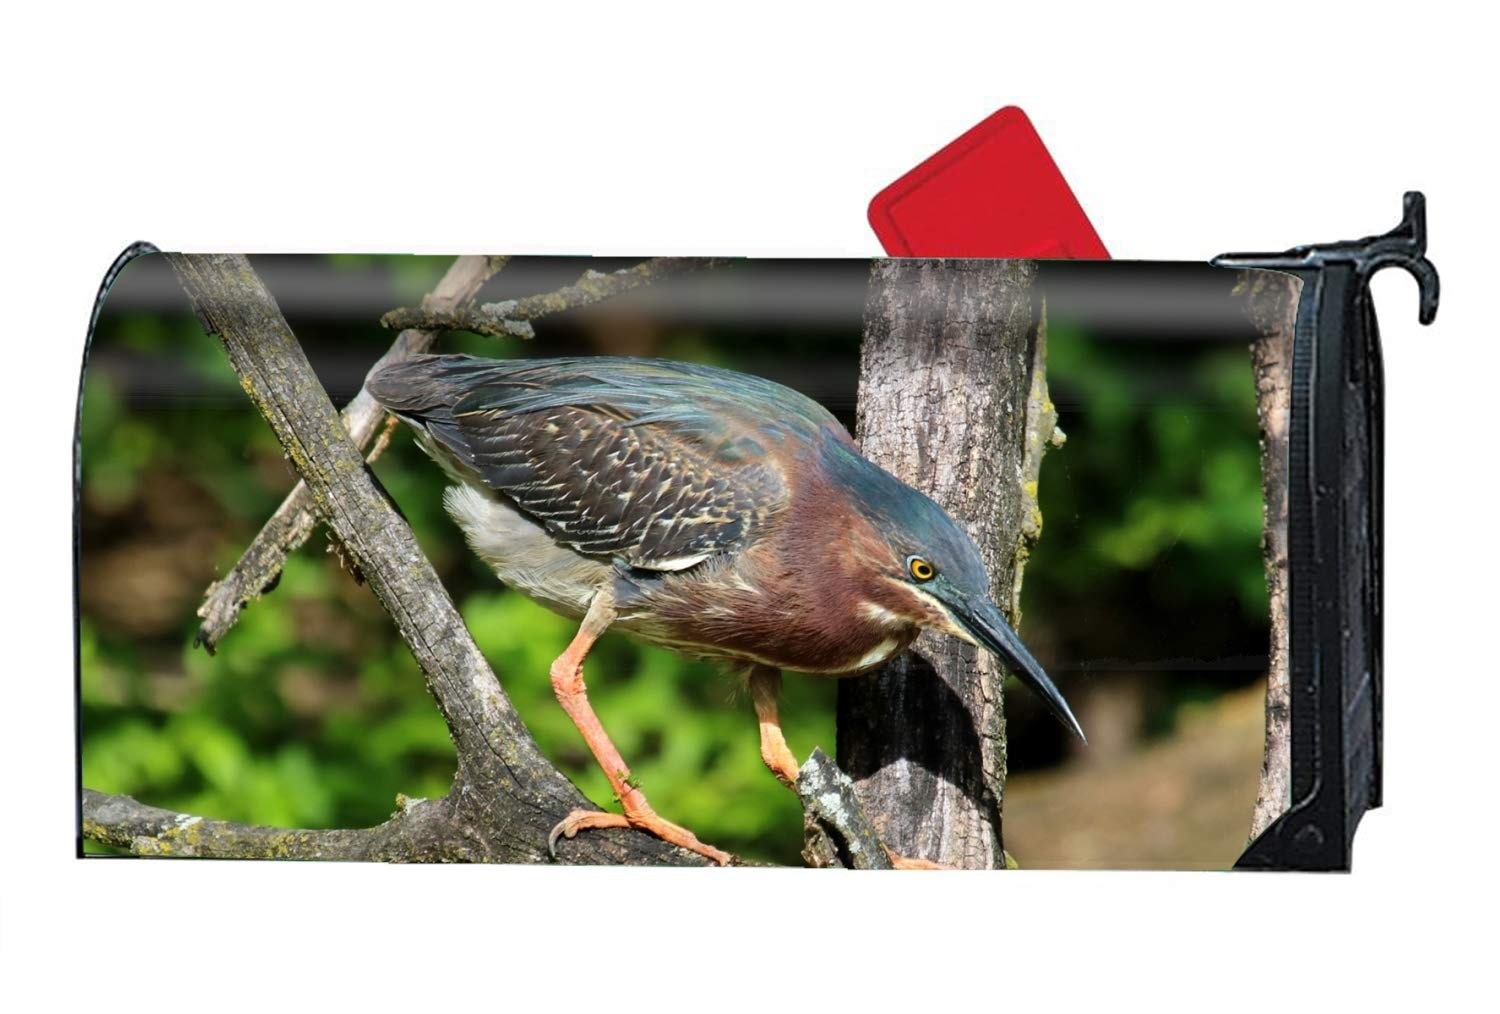 FunnyLife Animal Heron Birds Personalized Mailbox Cover Magnetic Spring Summer Fall Winter for Standard Mailboxes